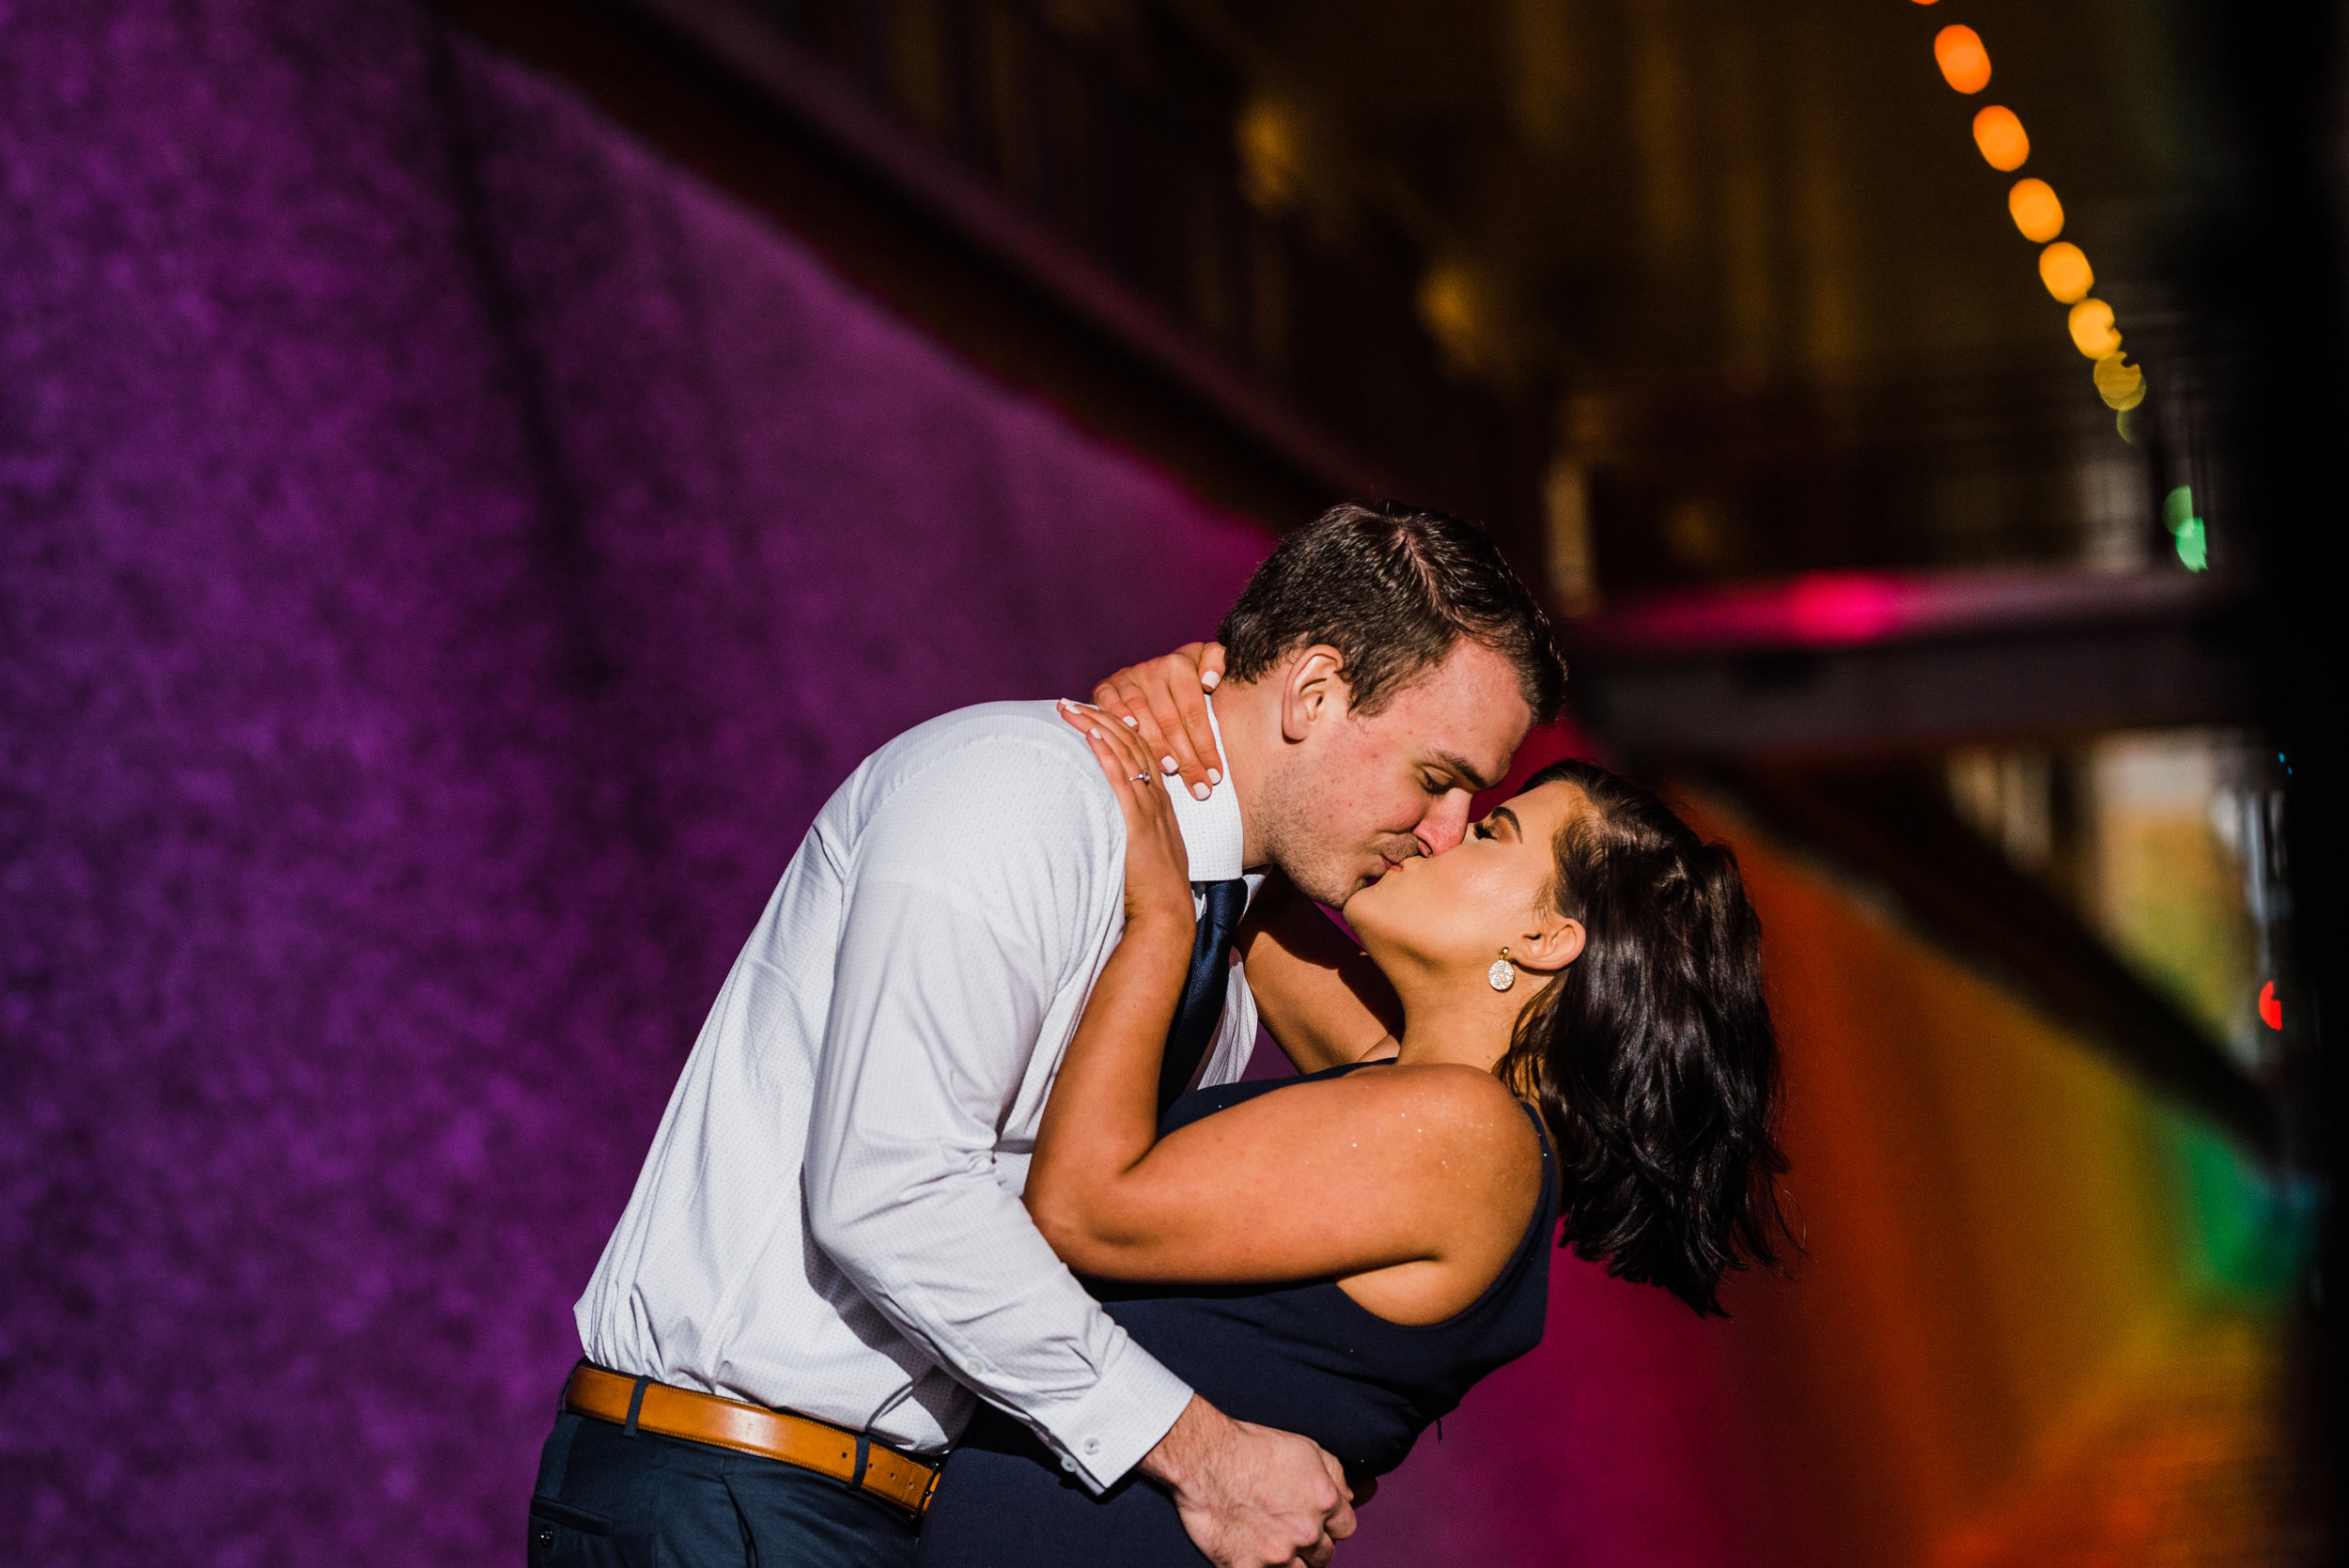 downtownpittsburghengagement-2053.jpg